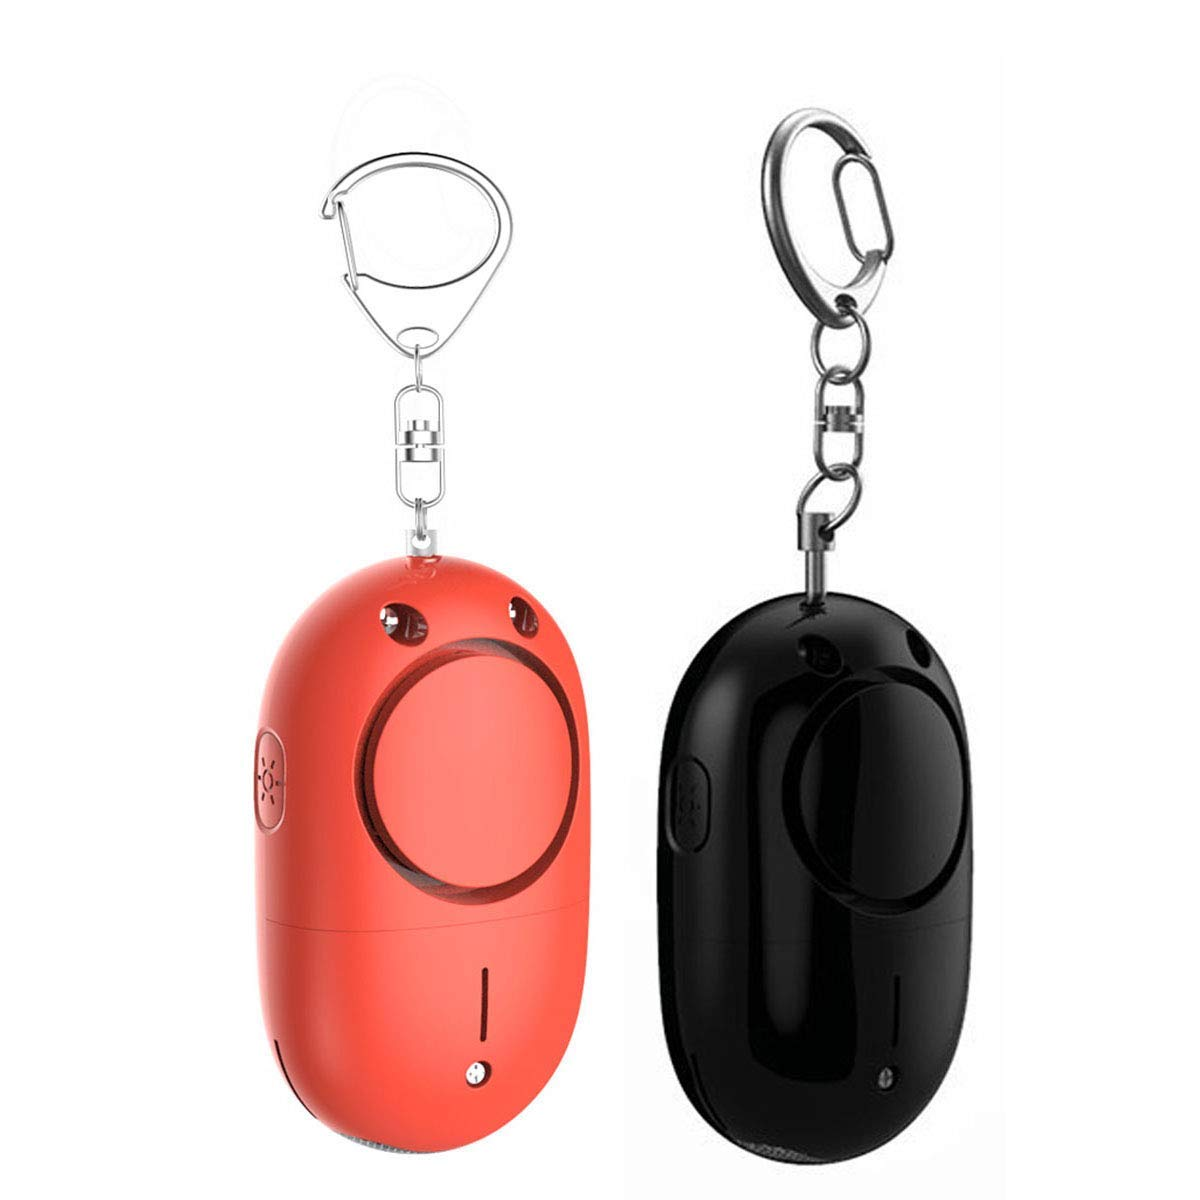 Devoted Newest Anti-rape Device Alarm Loud Alert Attack Panic Safety Personal Security Keychain For Kids Women Self-defense Supplies Consumer Electronics Accessories & Parts